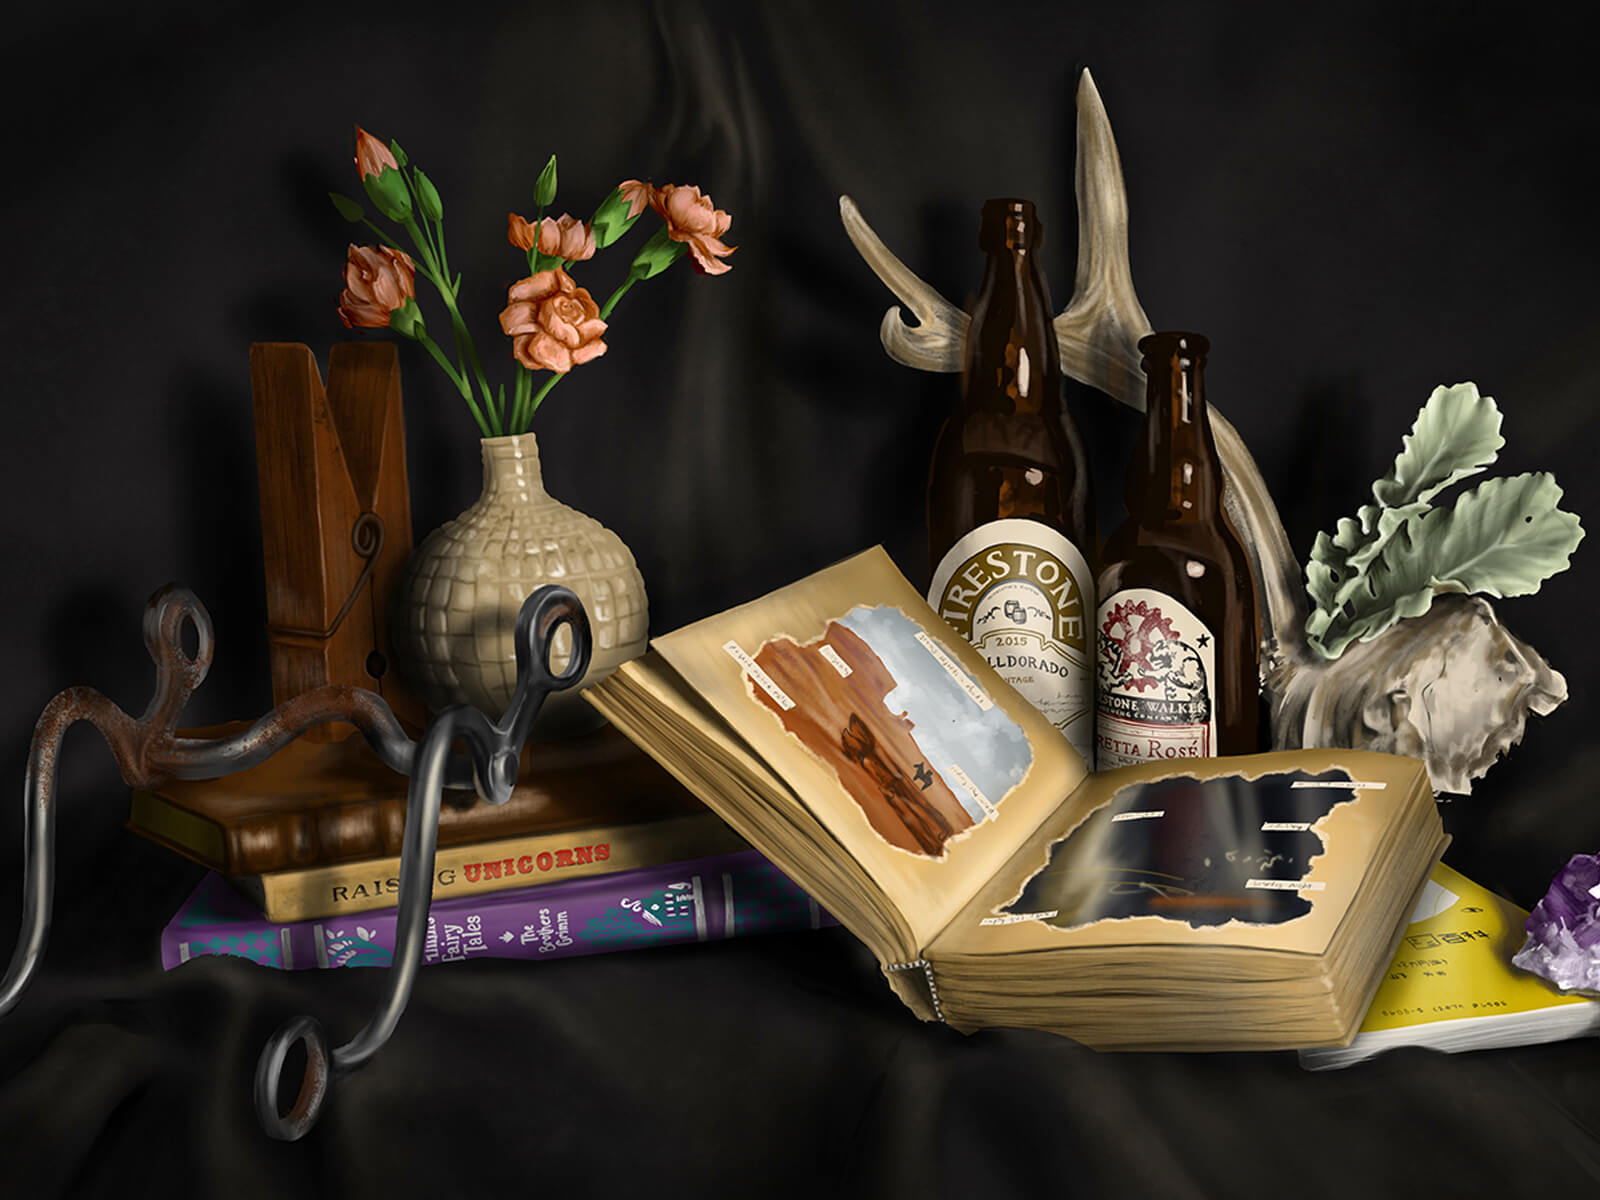 still-life traditional painting of objects including books, bottles, a vase with flowers, an antler, and a large clothespin